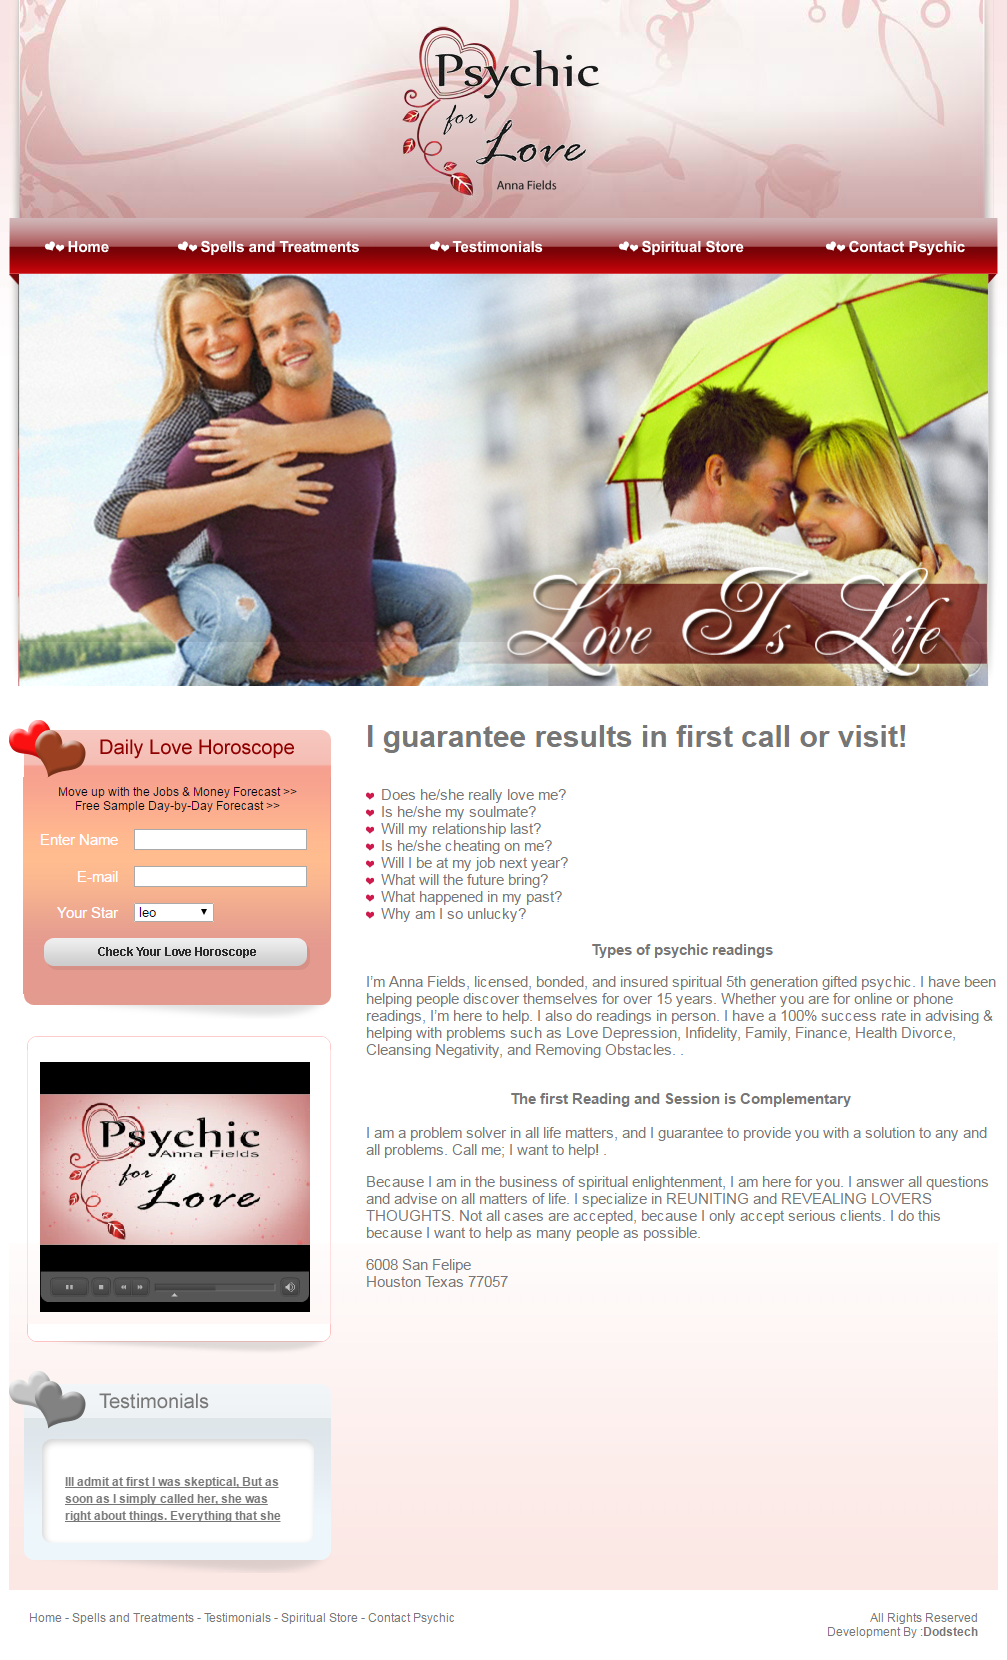 Psychic for Love Anna Fields Houston Texas